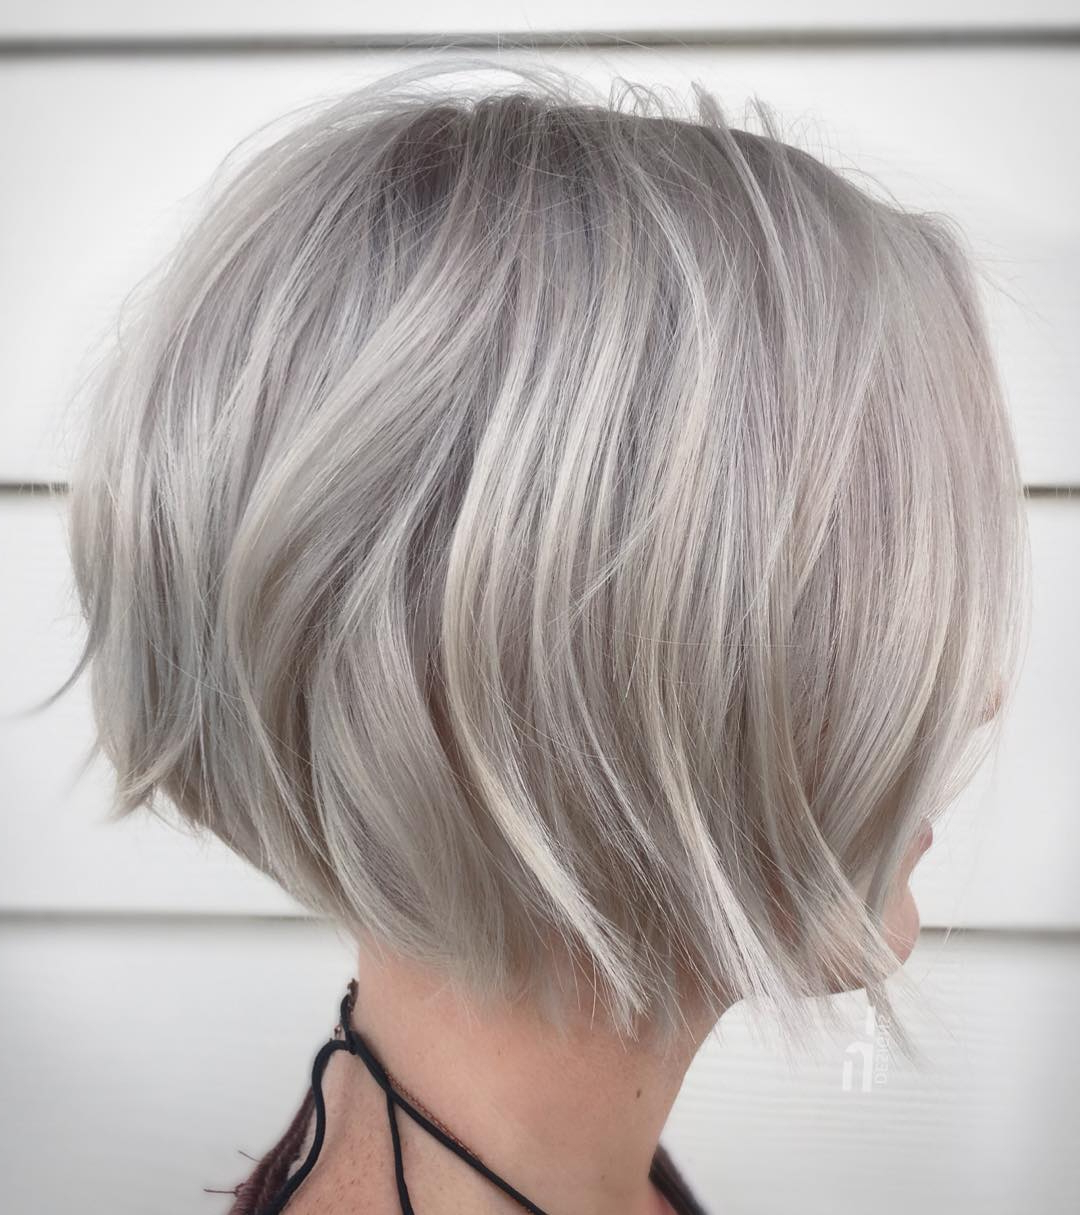 10 Stylish Medium Bob Haircuts For Women – Easy Care Chic Pertaining To Latest Textured Classic Bob Hairstyles (View 1 of 20)